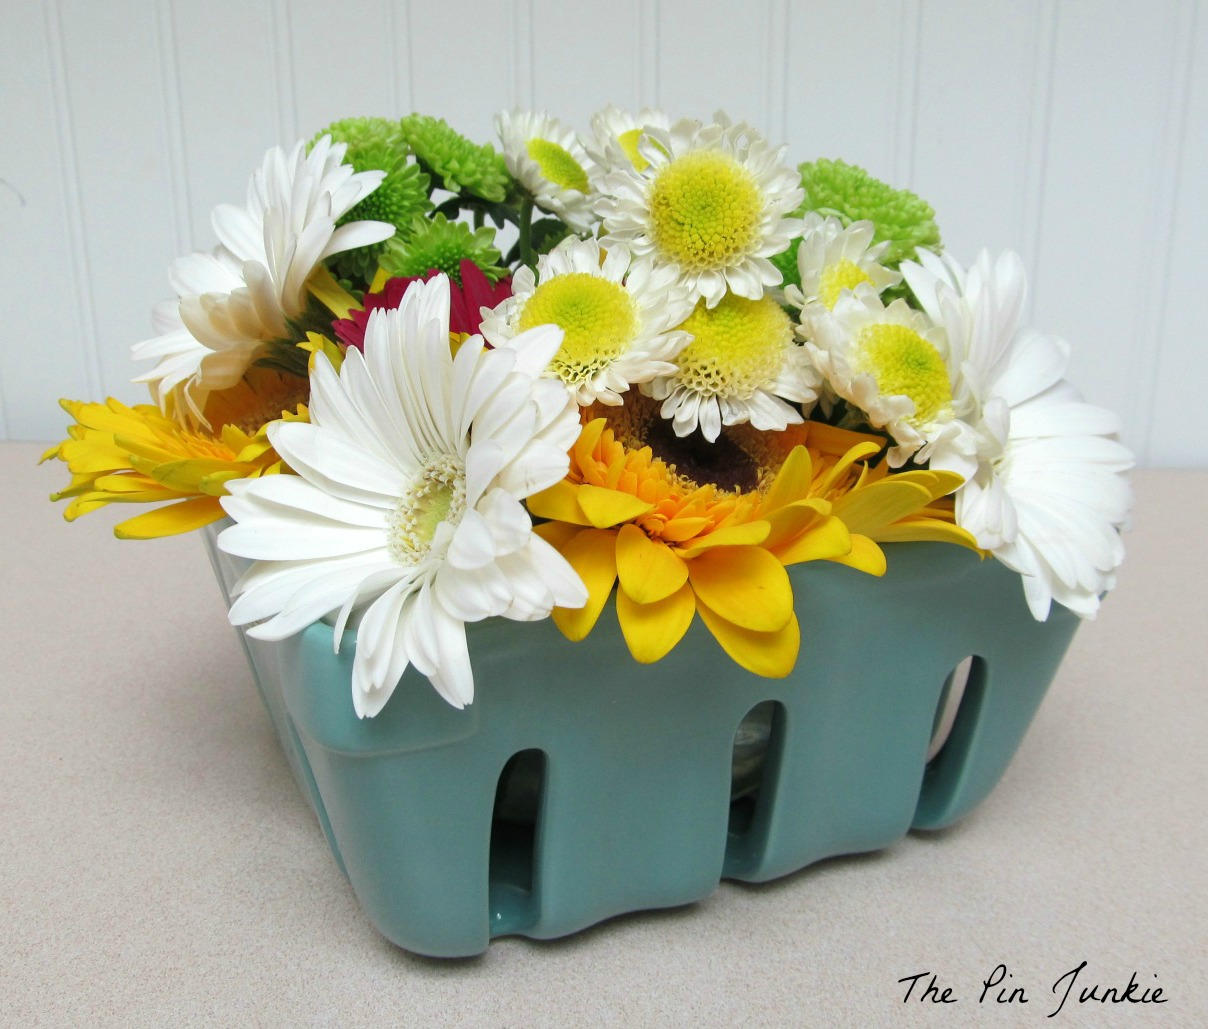 Chic on a Shoestring Decorating Decorate for Spring with Flowers Guest Post